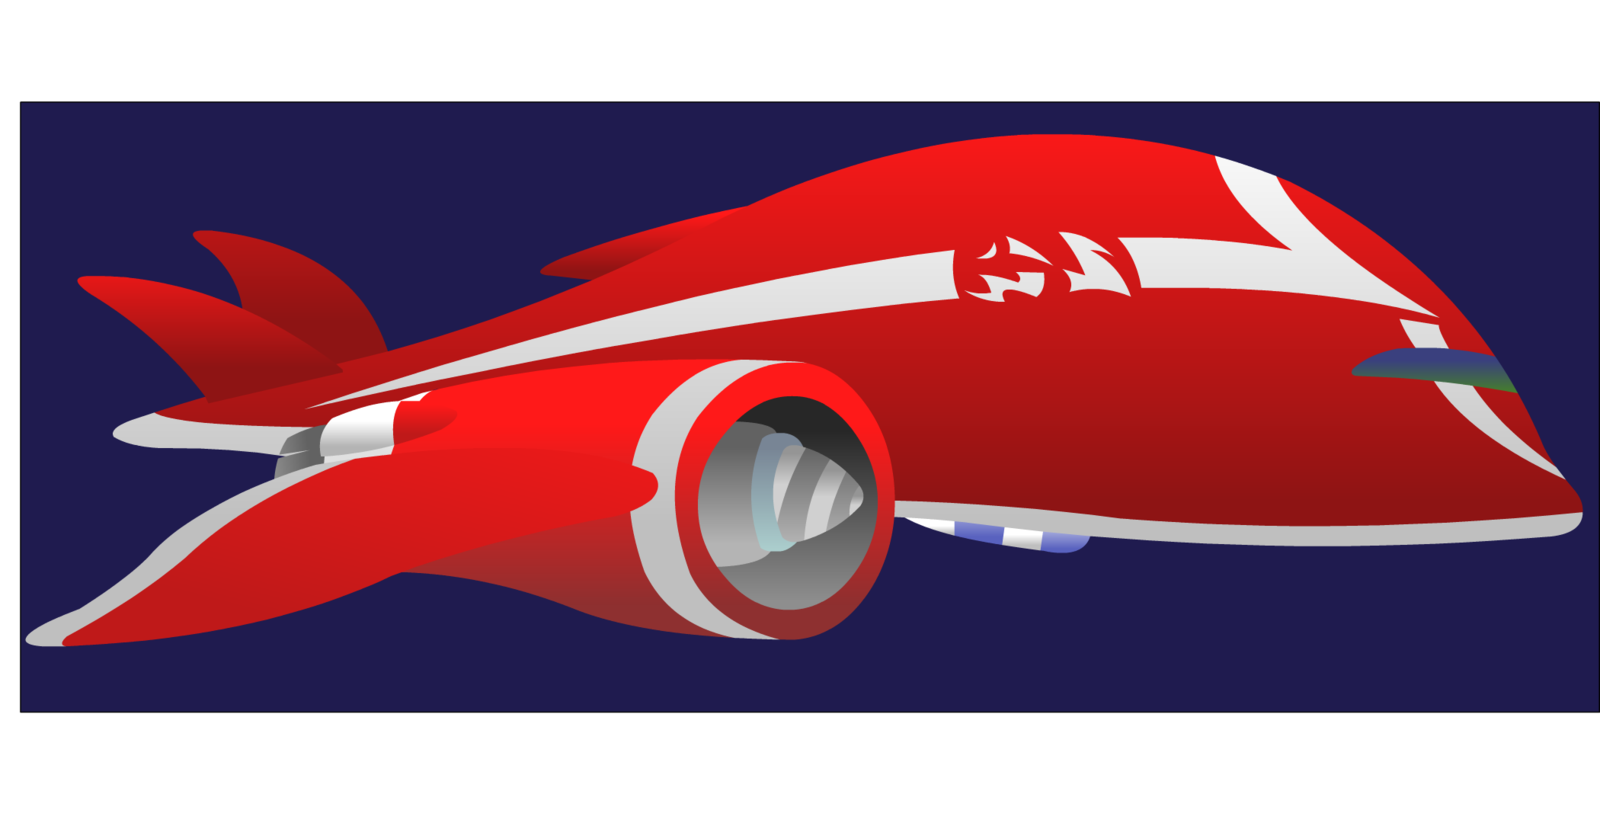 Image jumba s ship. Spaceship clipart red